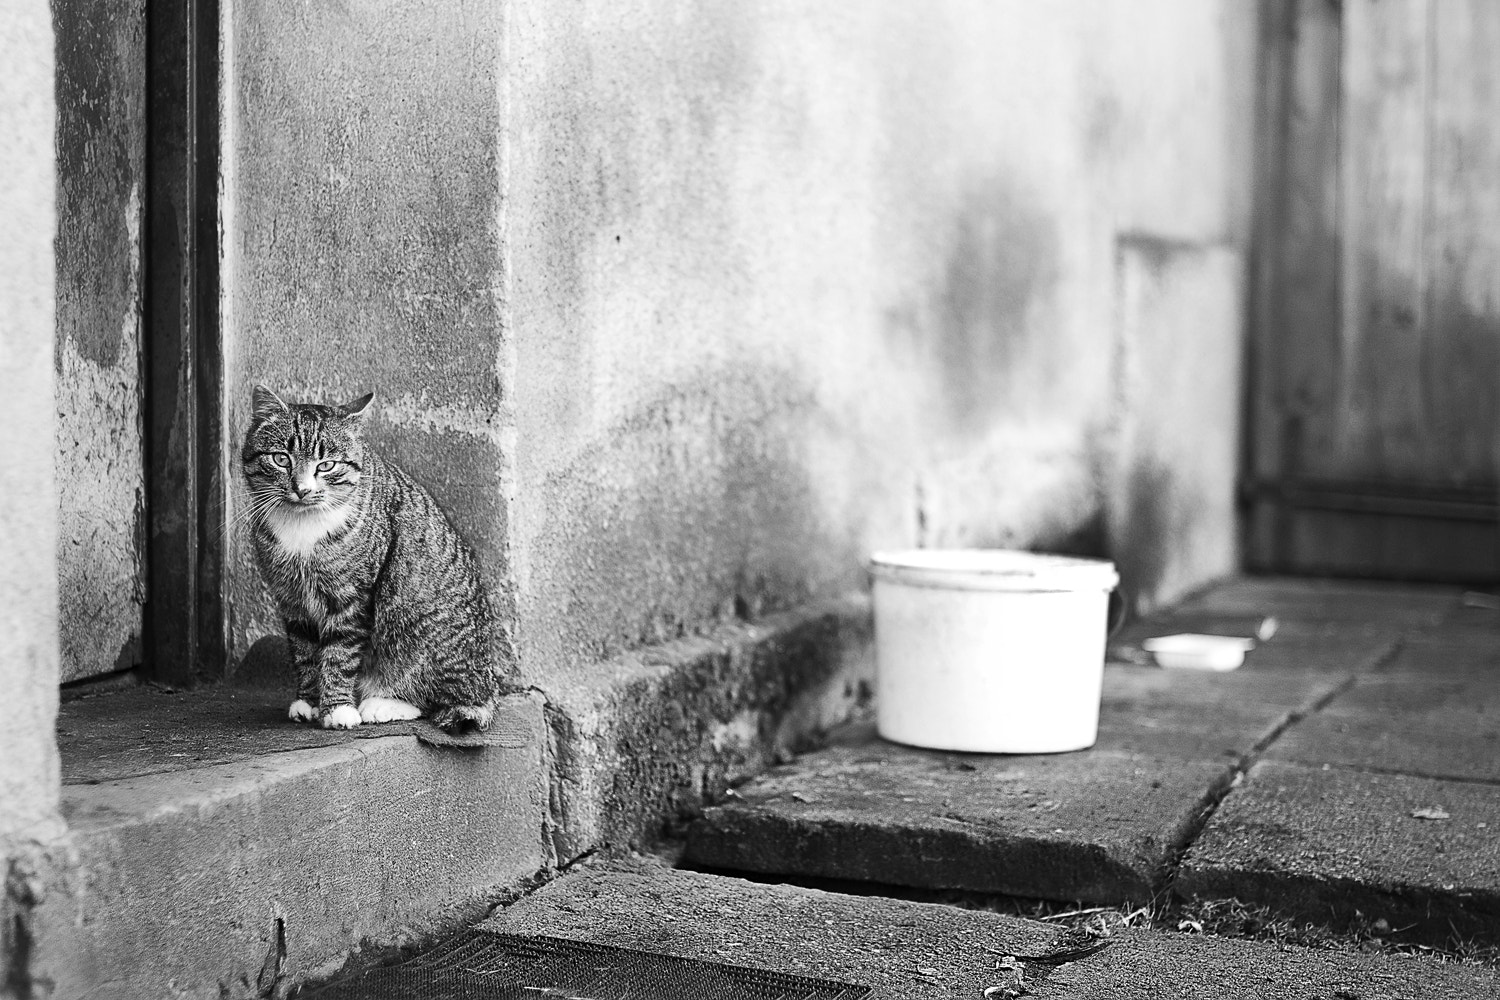 Photograph cat's life by Agnieszka Szydlowska on 500px